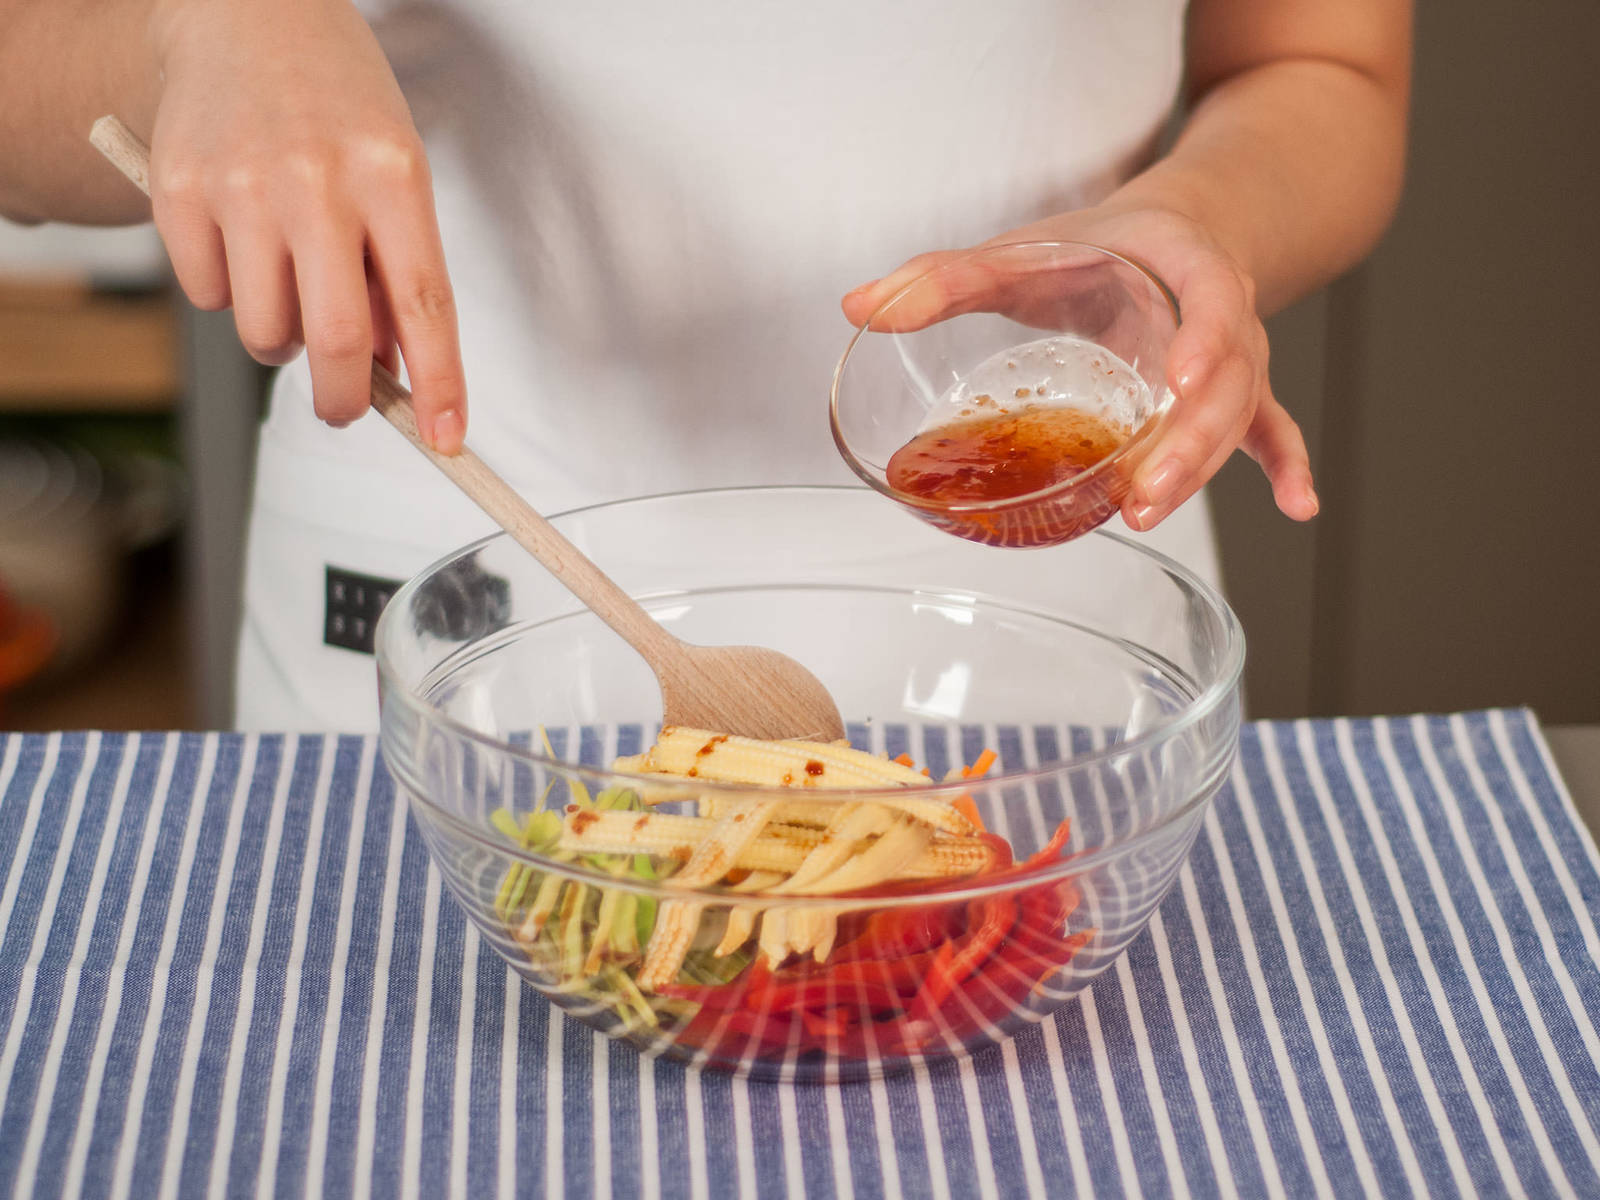 In a large bowl, mix sliced carrots, leek, bell pepper, and baby corn with sweet chili sauce and soy sauce.